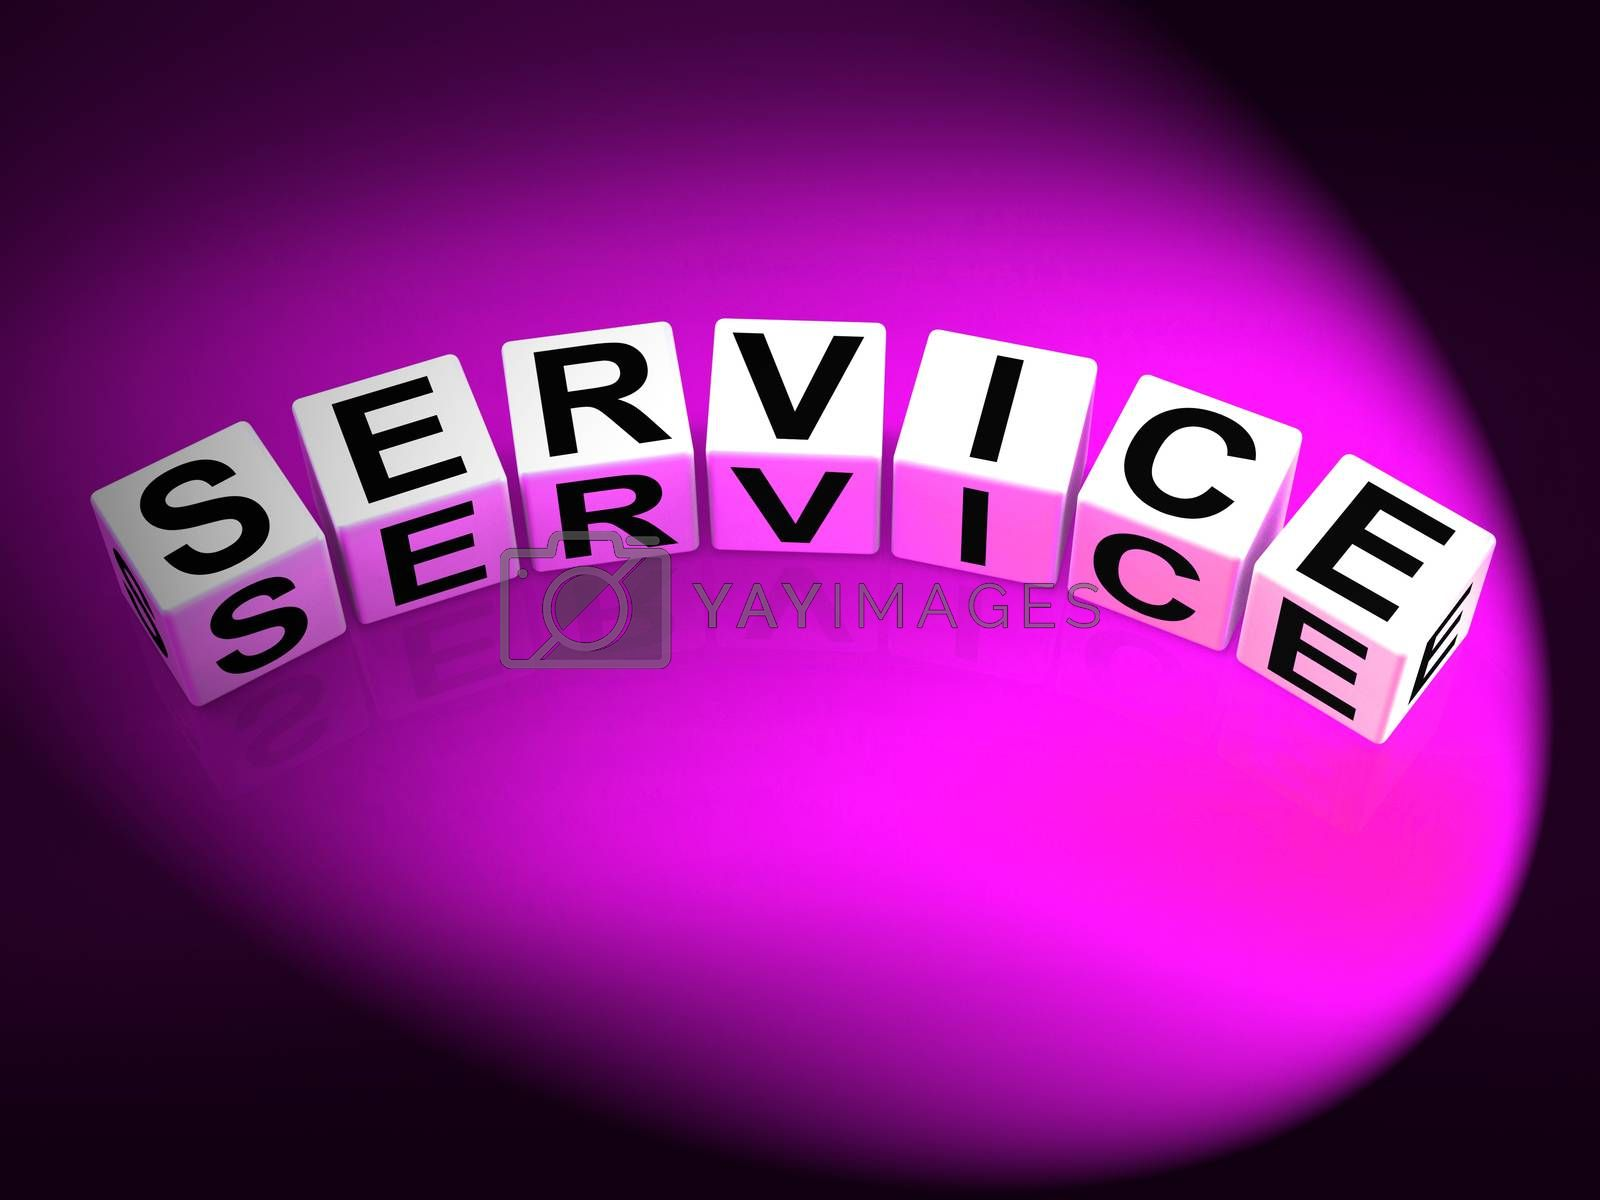 Service Dice Refer to Assistance Help work or Business by stuartmiles